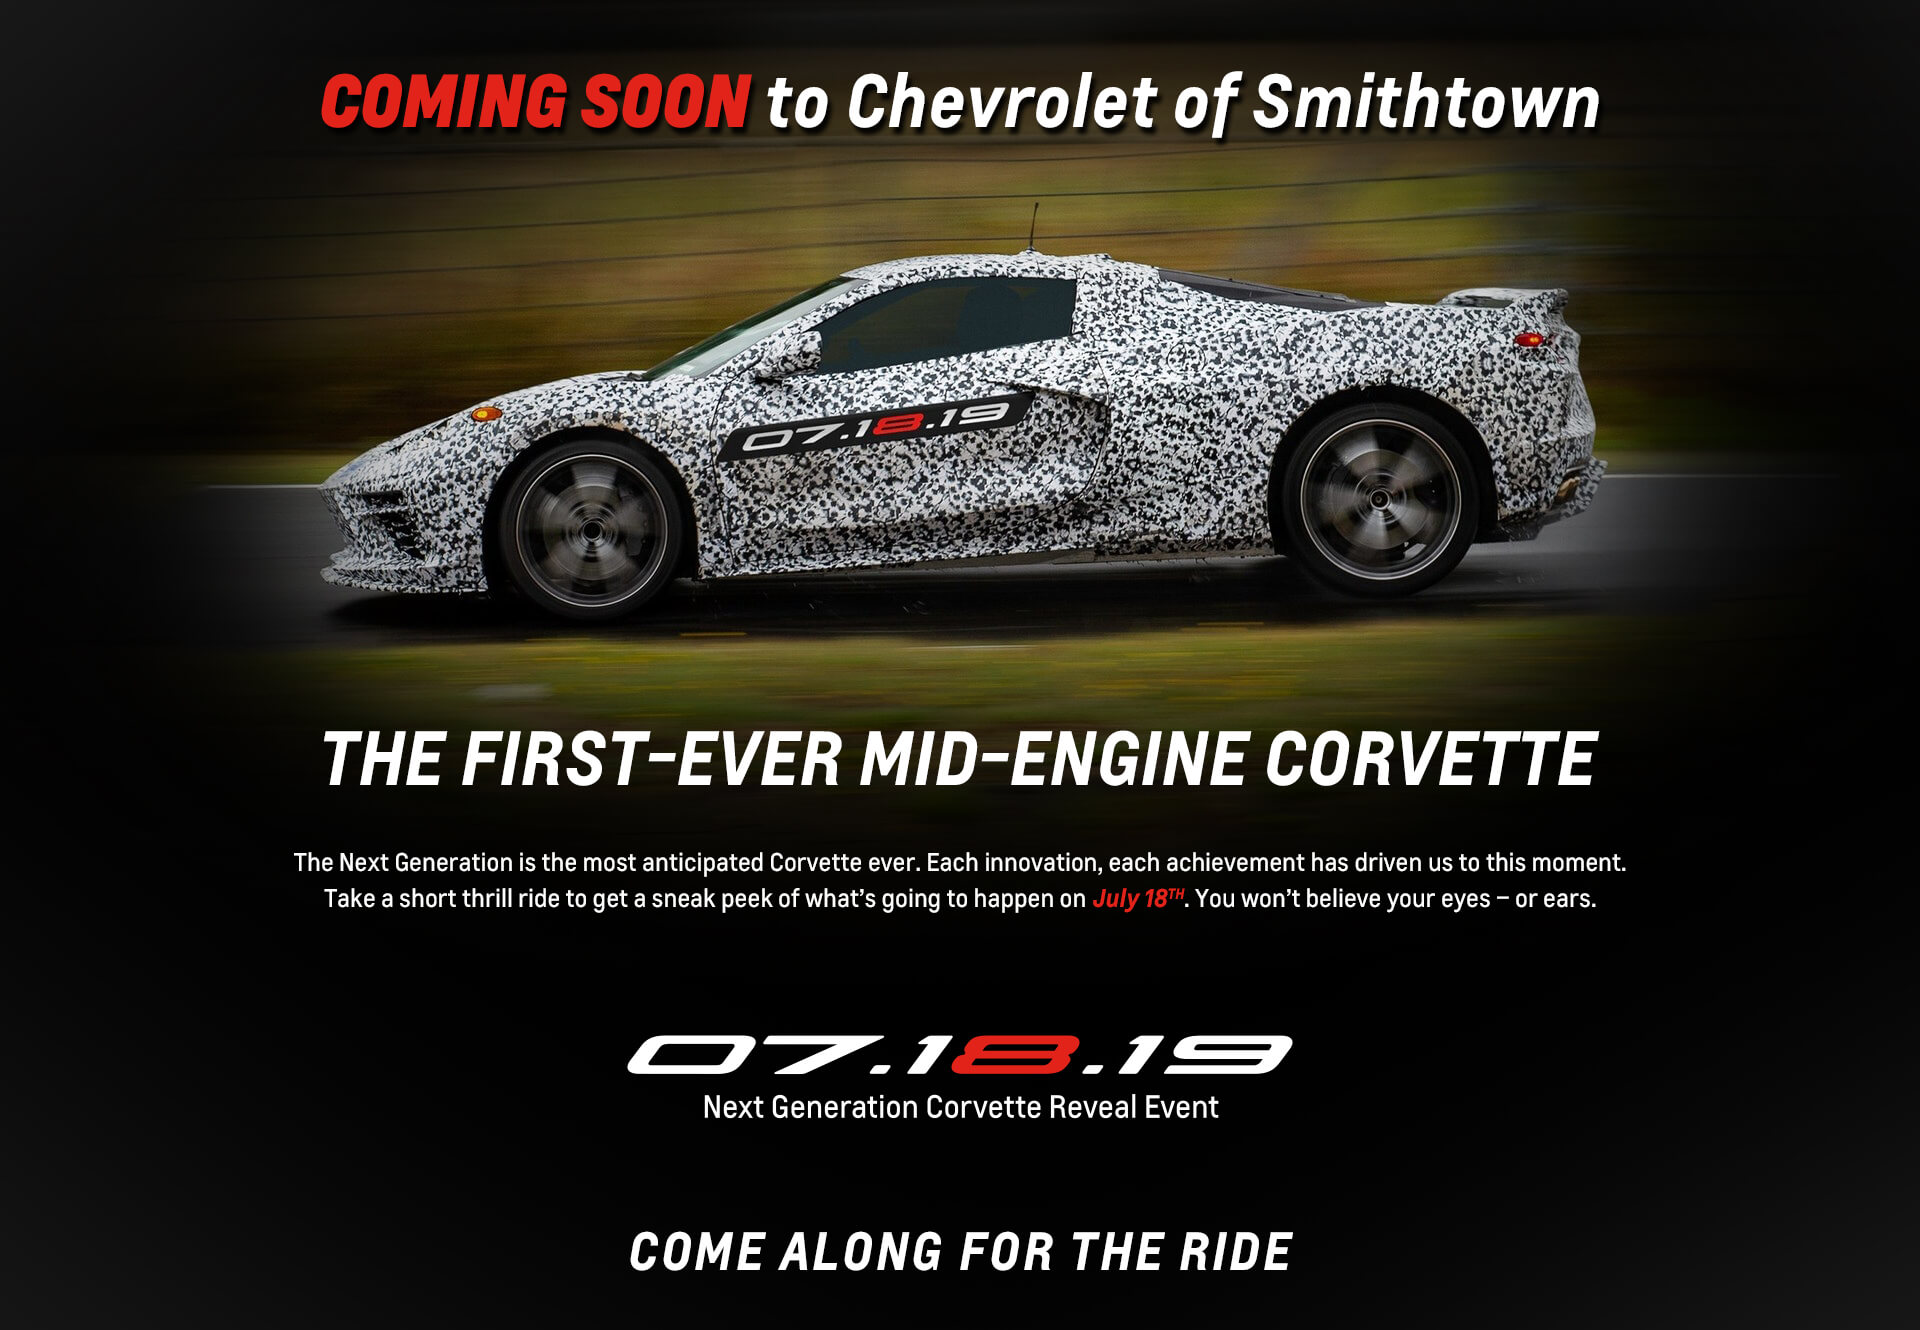 The First-Ever Mid-Engine Corvette